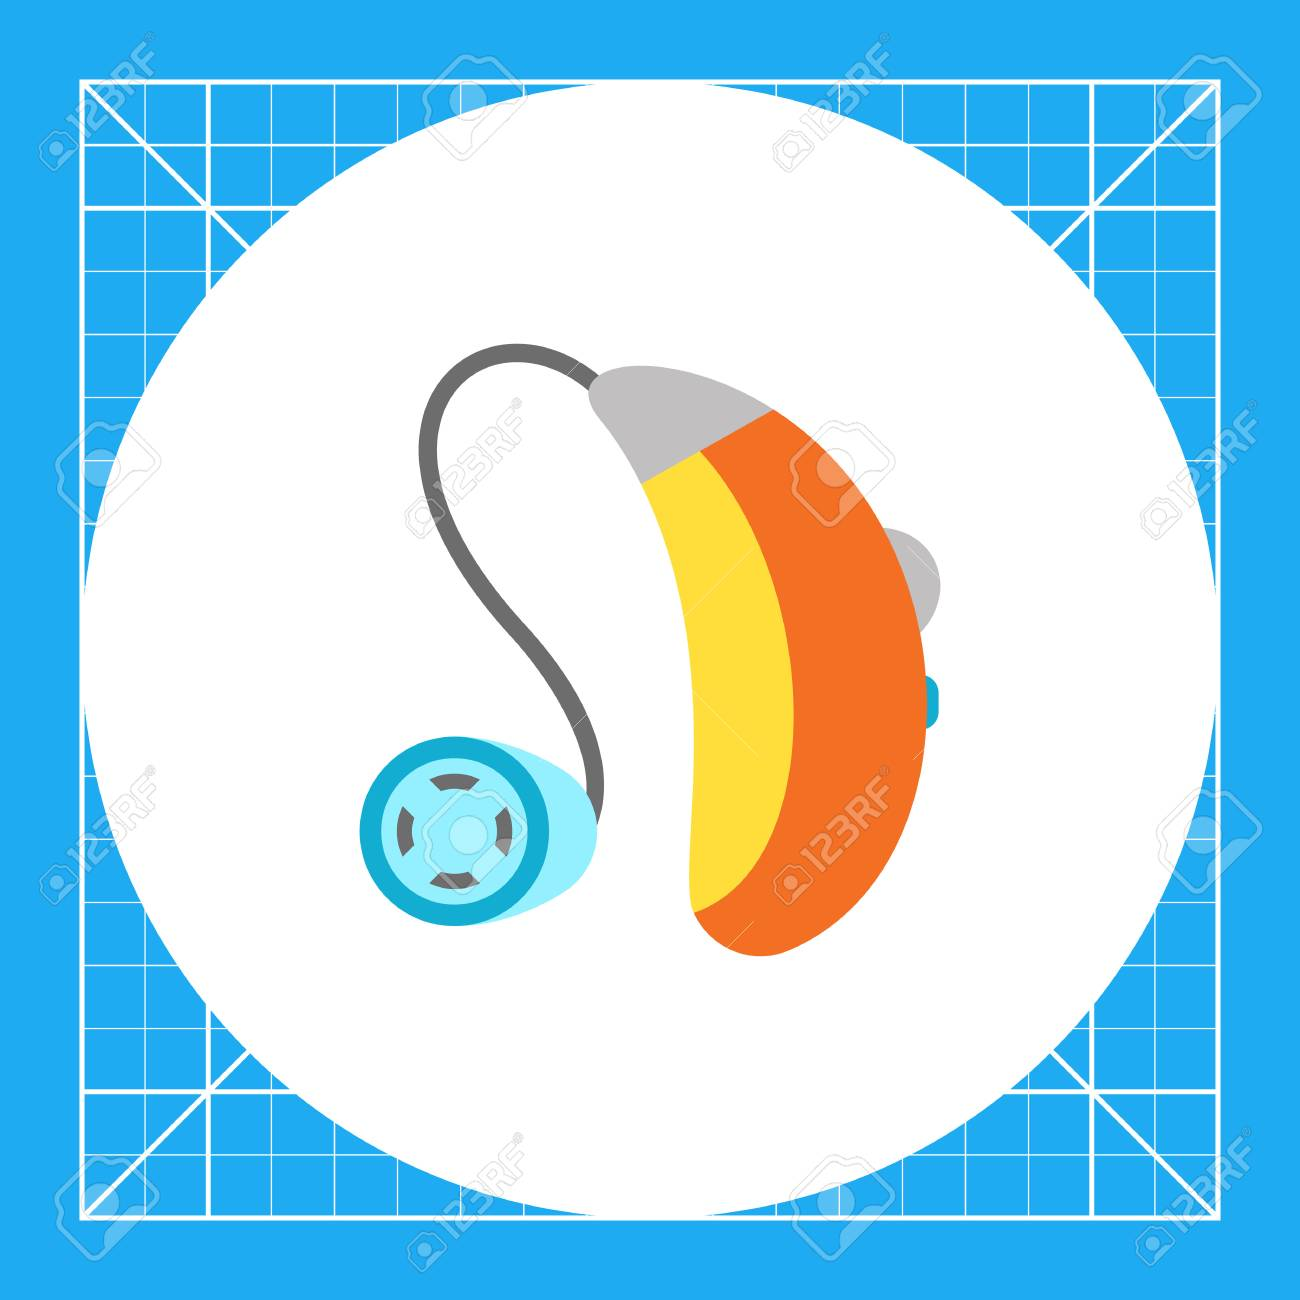 Multicolored flat icon of hearing aid apparatus - 66533920